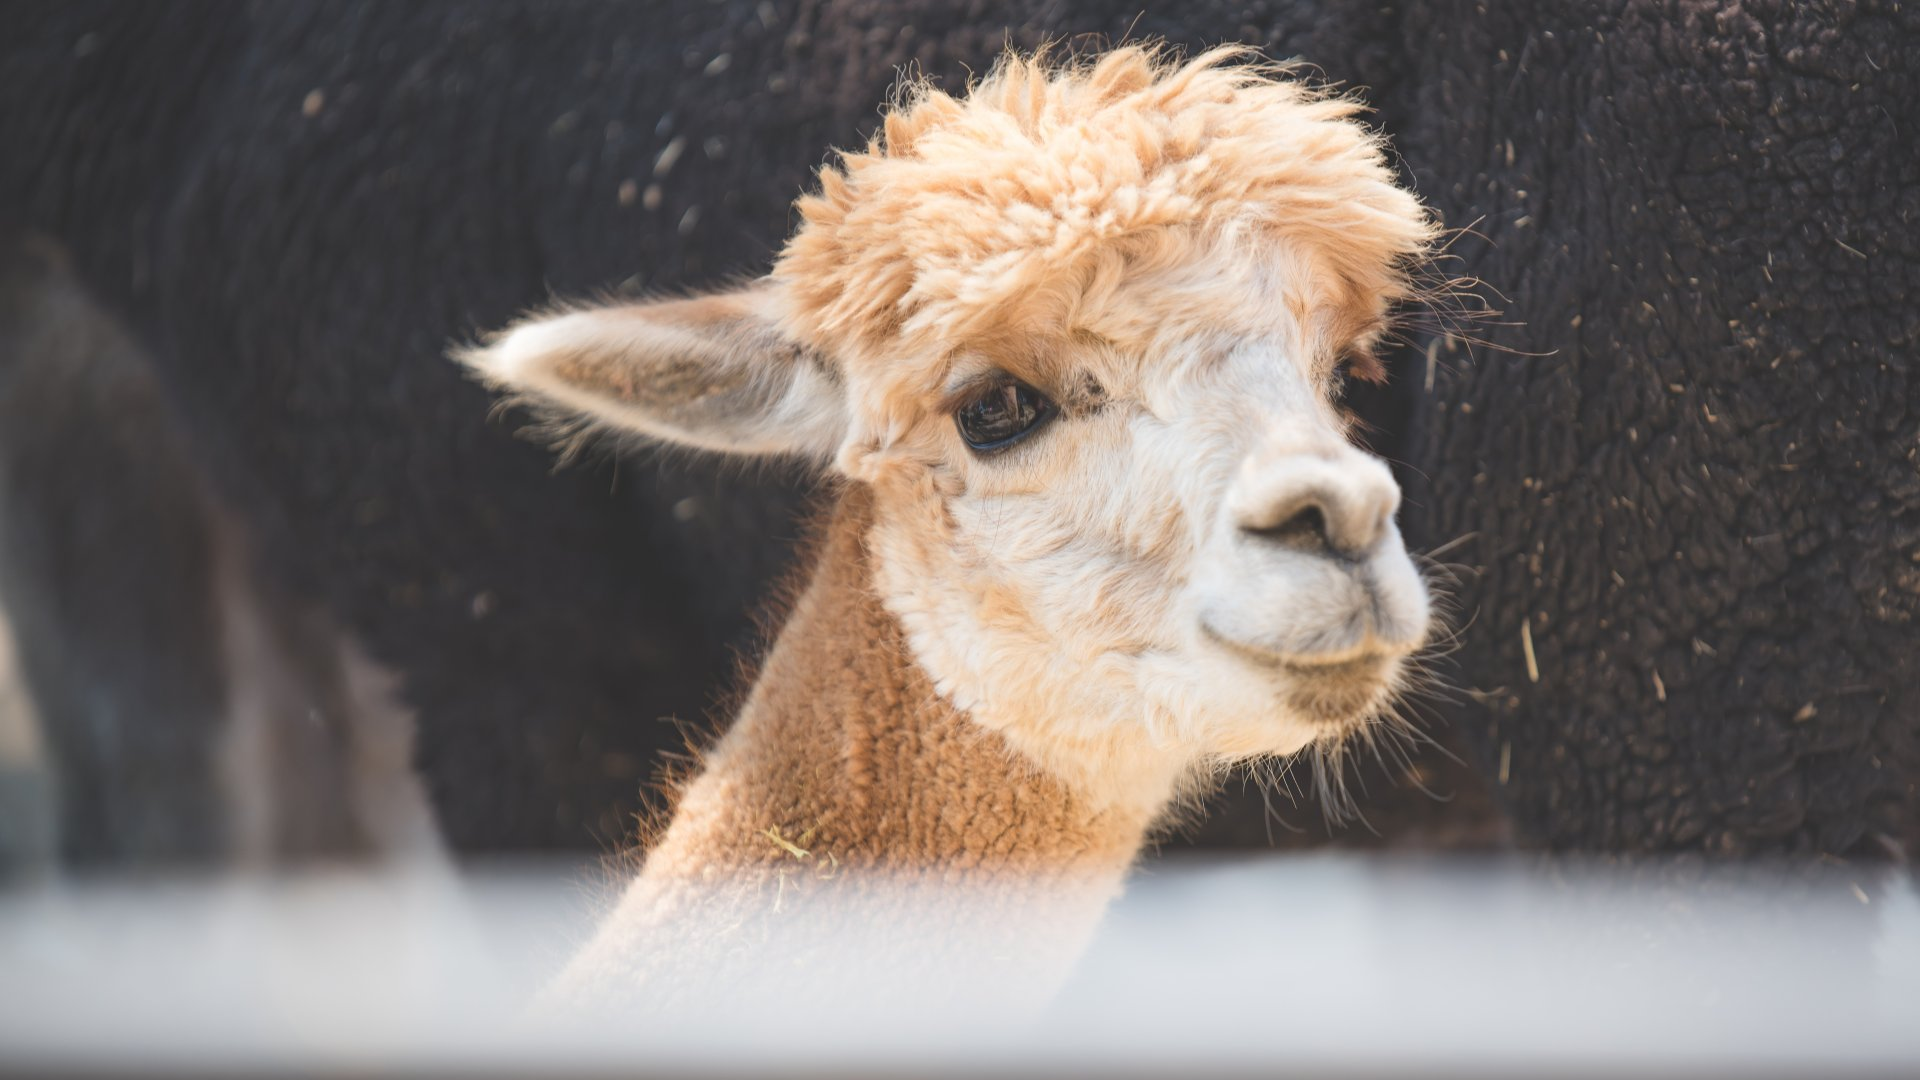 Explore alpaca farms, acres of lavender fields, and orchards as far as the eye can see.